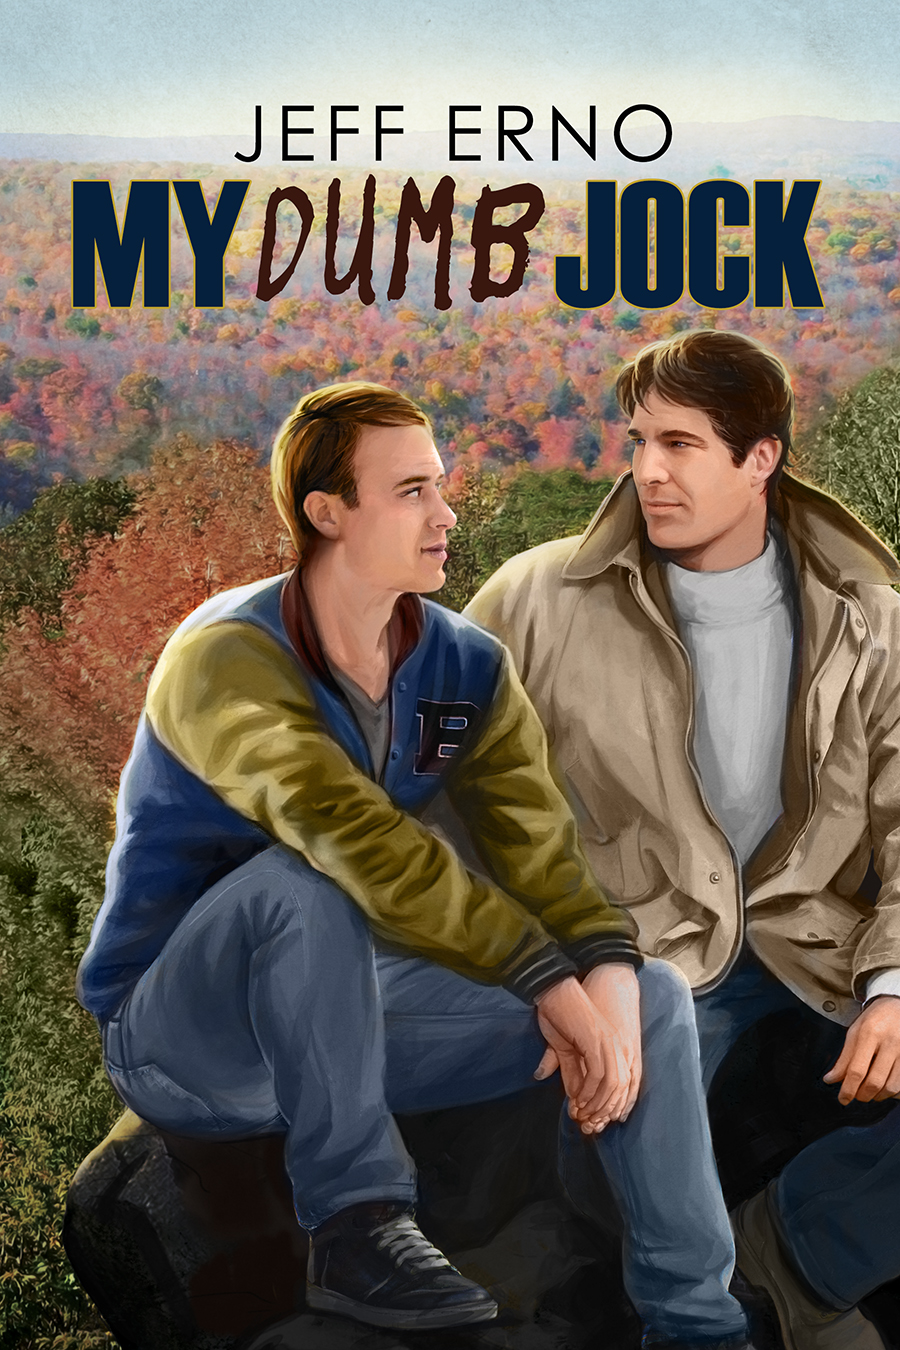 Dumb Jock by Jeff Erno